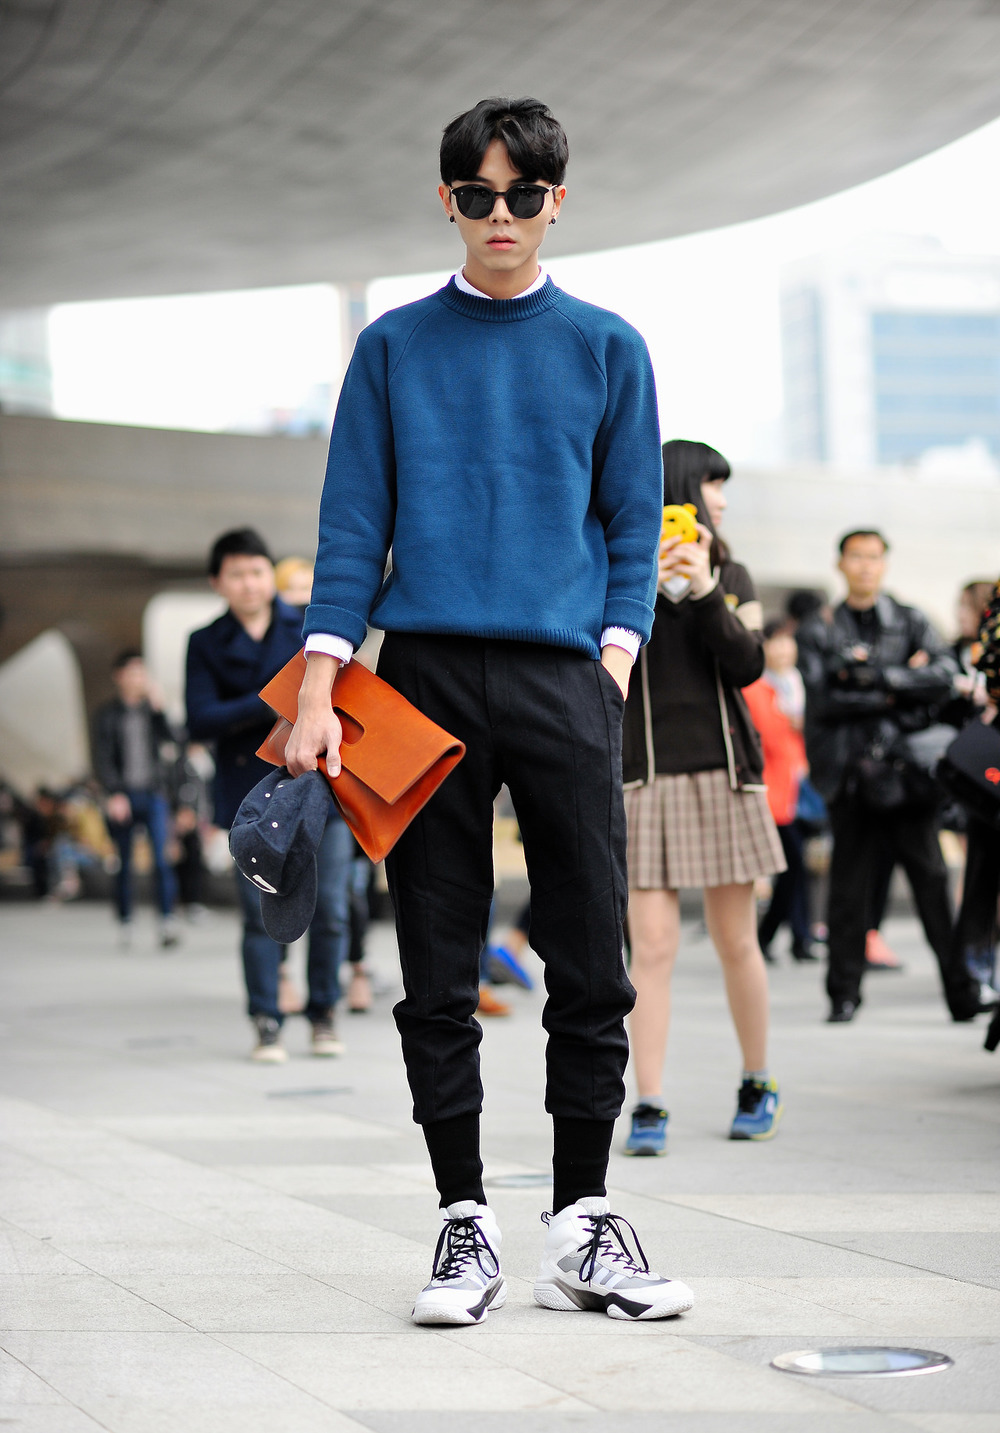 The man clutch combined with this streetwear style is everything I want. Joo Woo Jae photographed BY K.H.J | From:  relation2013.tumblr.com